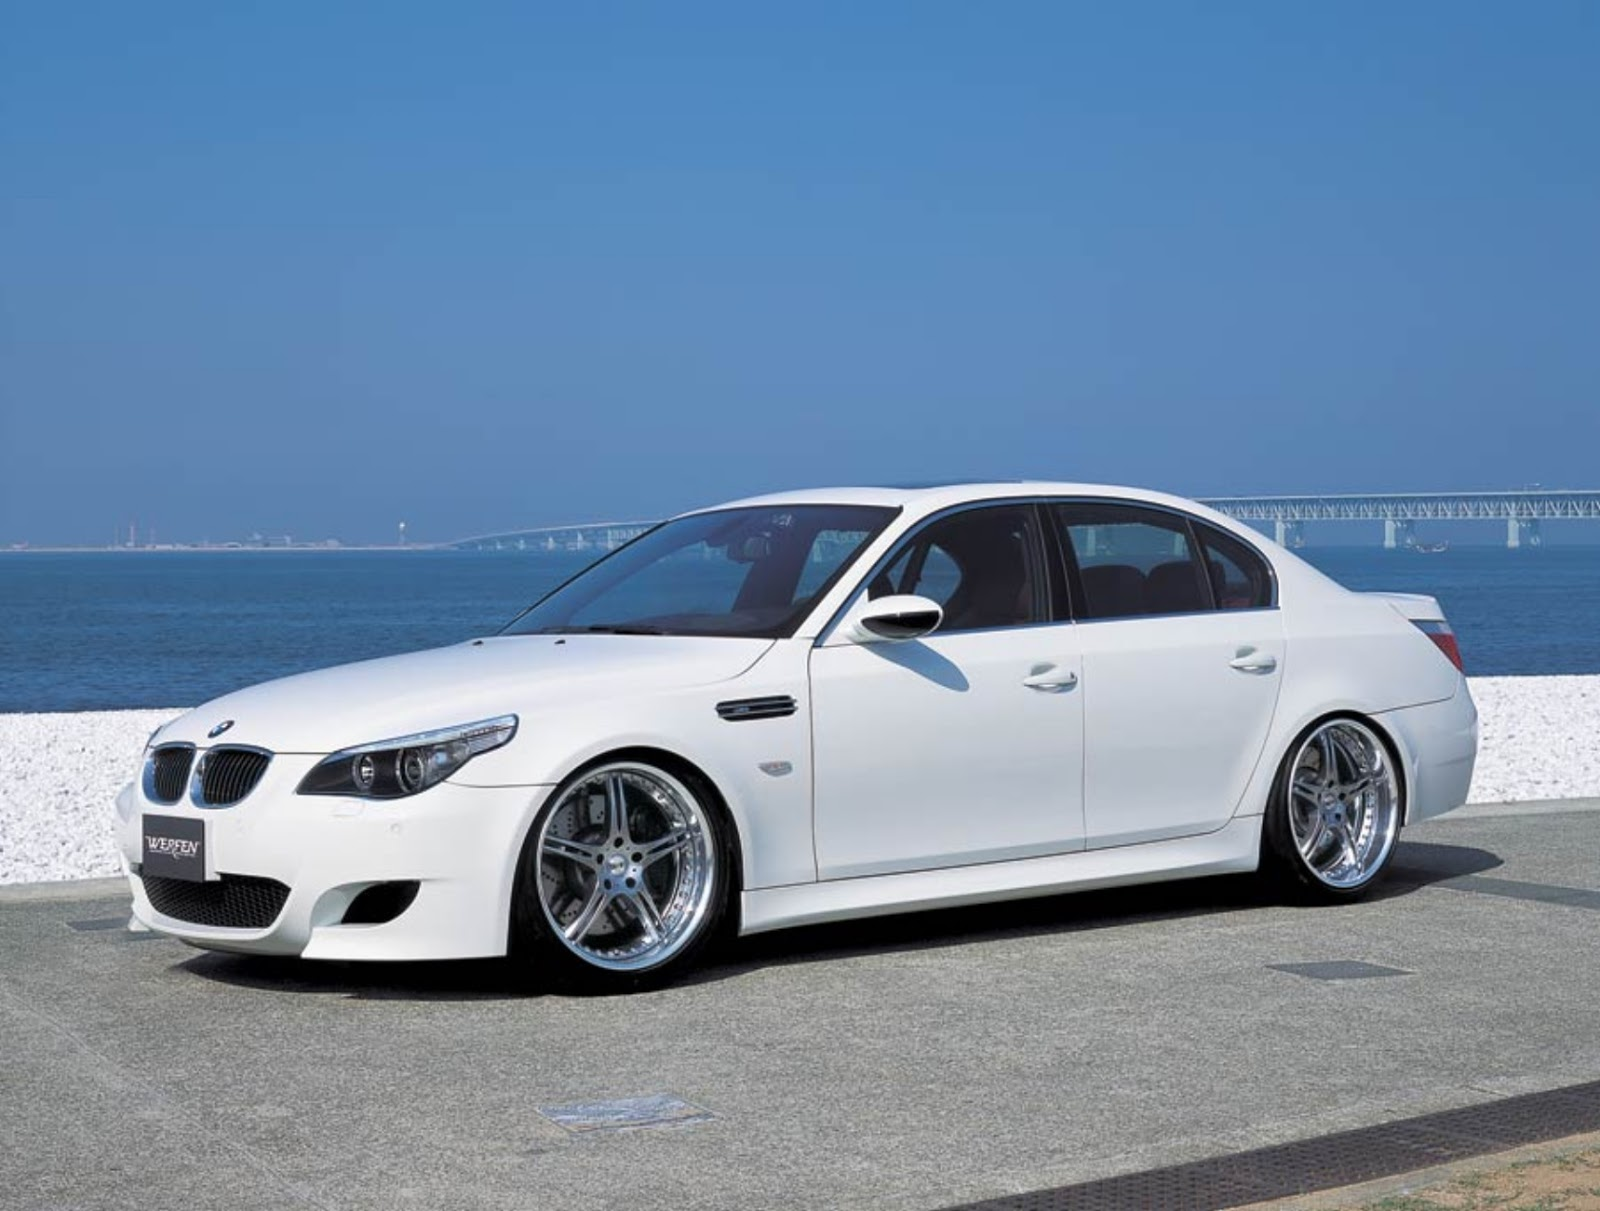 Listing All Cars >> All Cars NZ: 2010 BMW E60 M5